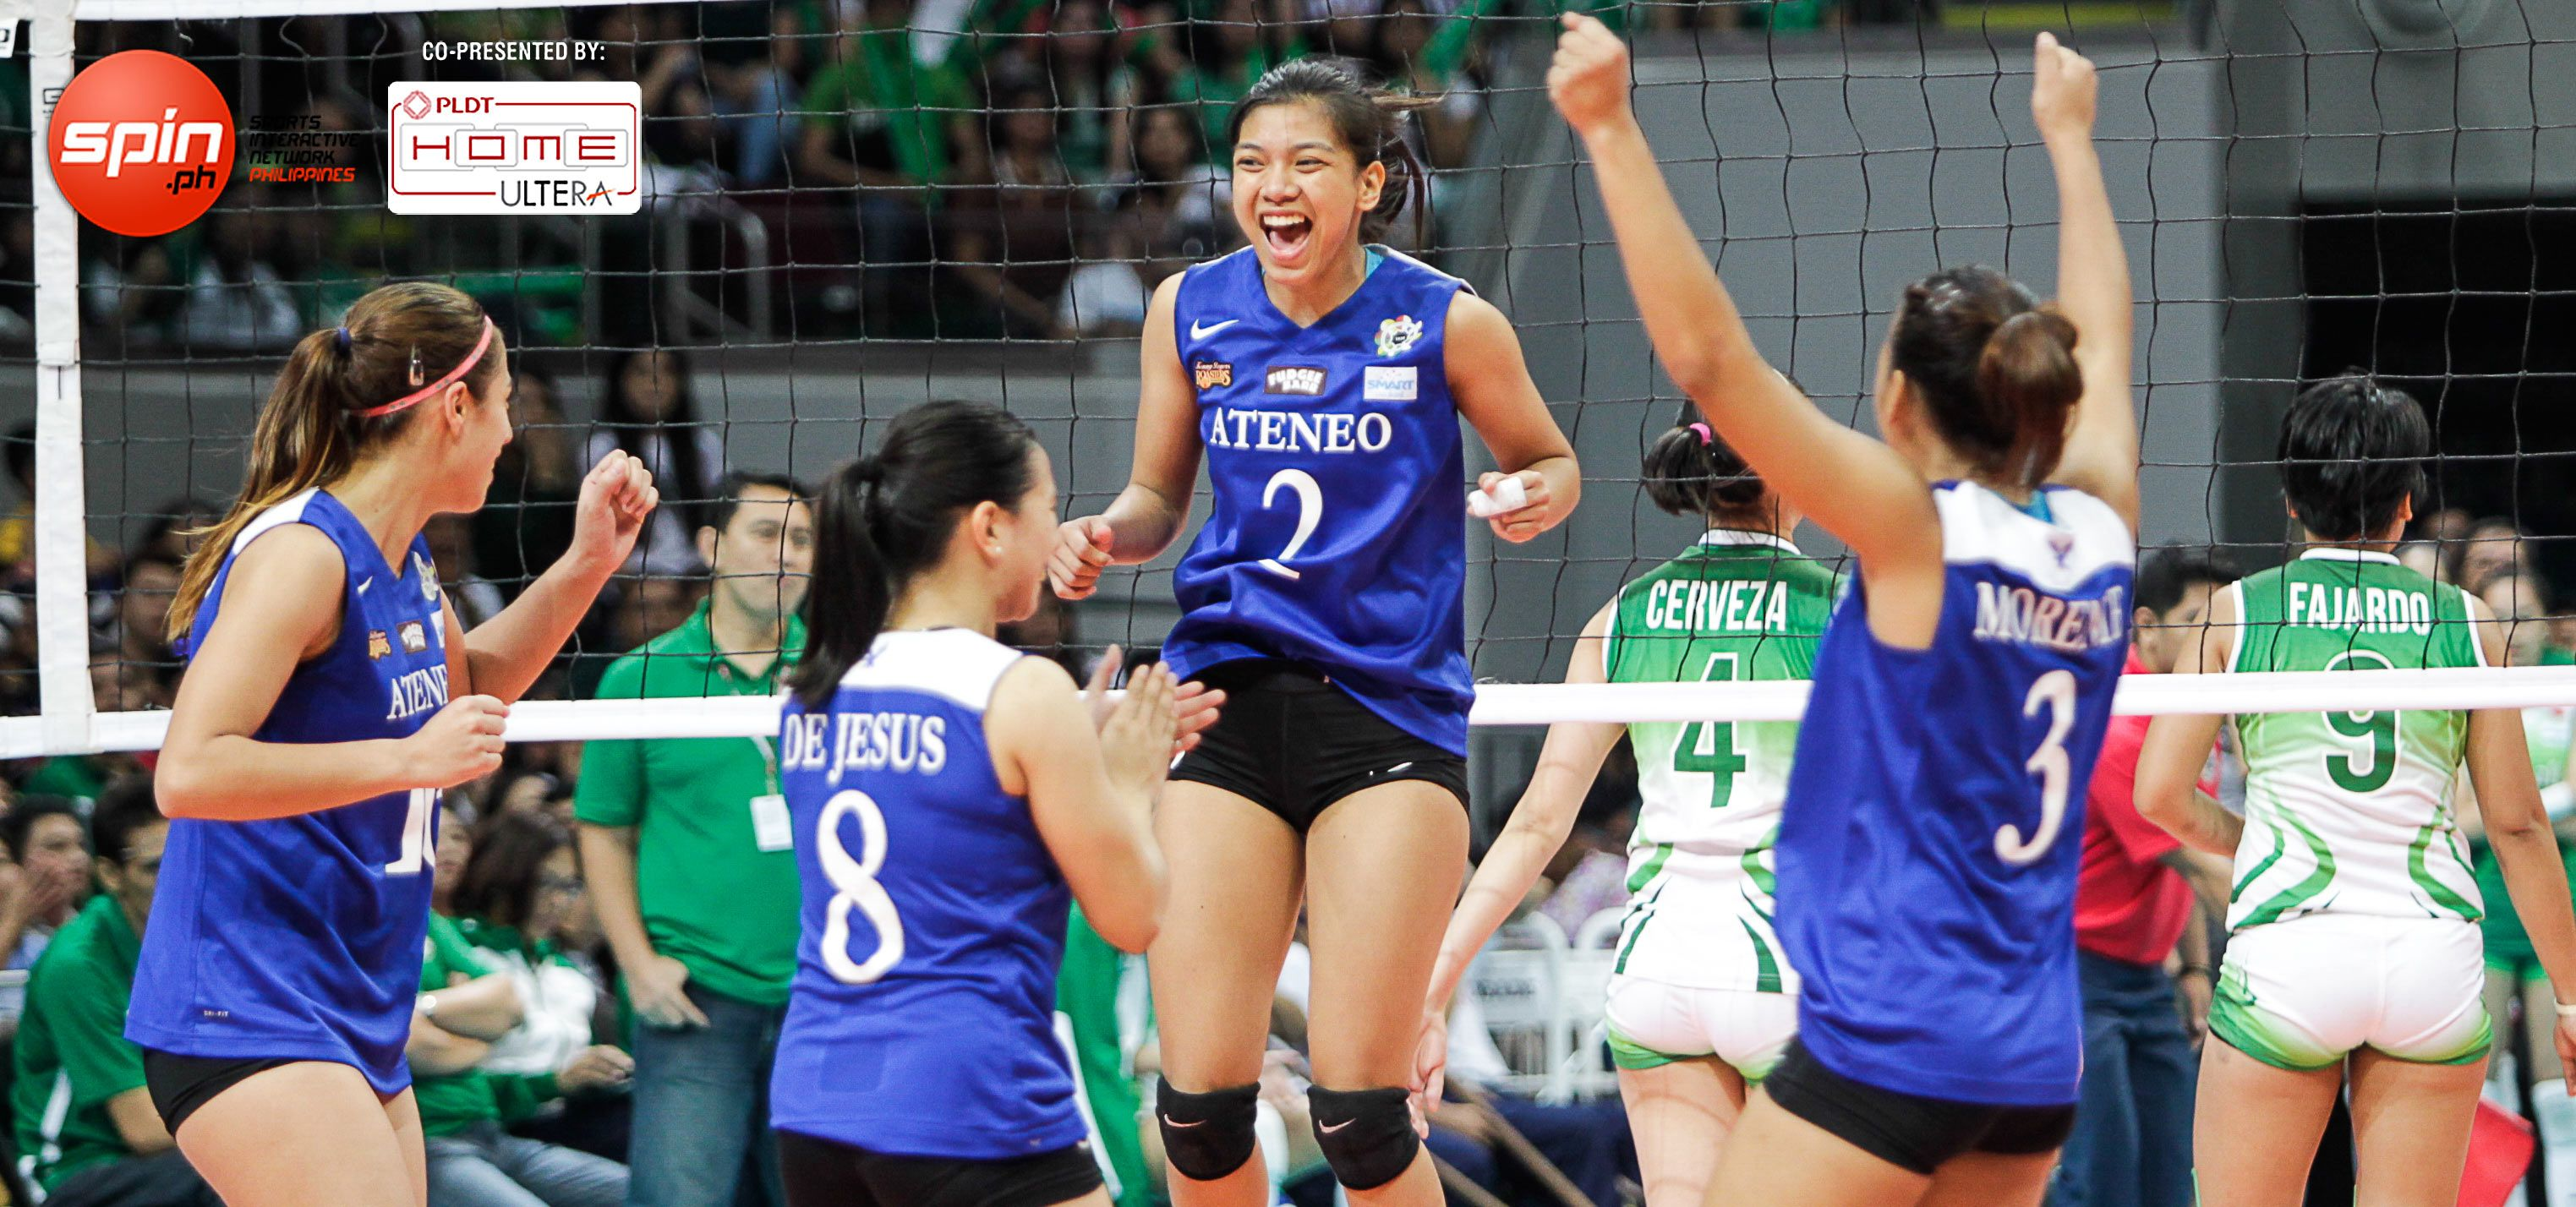 <em>Spin.ph</em>&nbsp;Top 10 Sports Heroes of 2015: Alyssa Valdez, the Game Changer